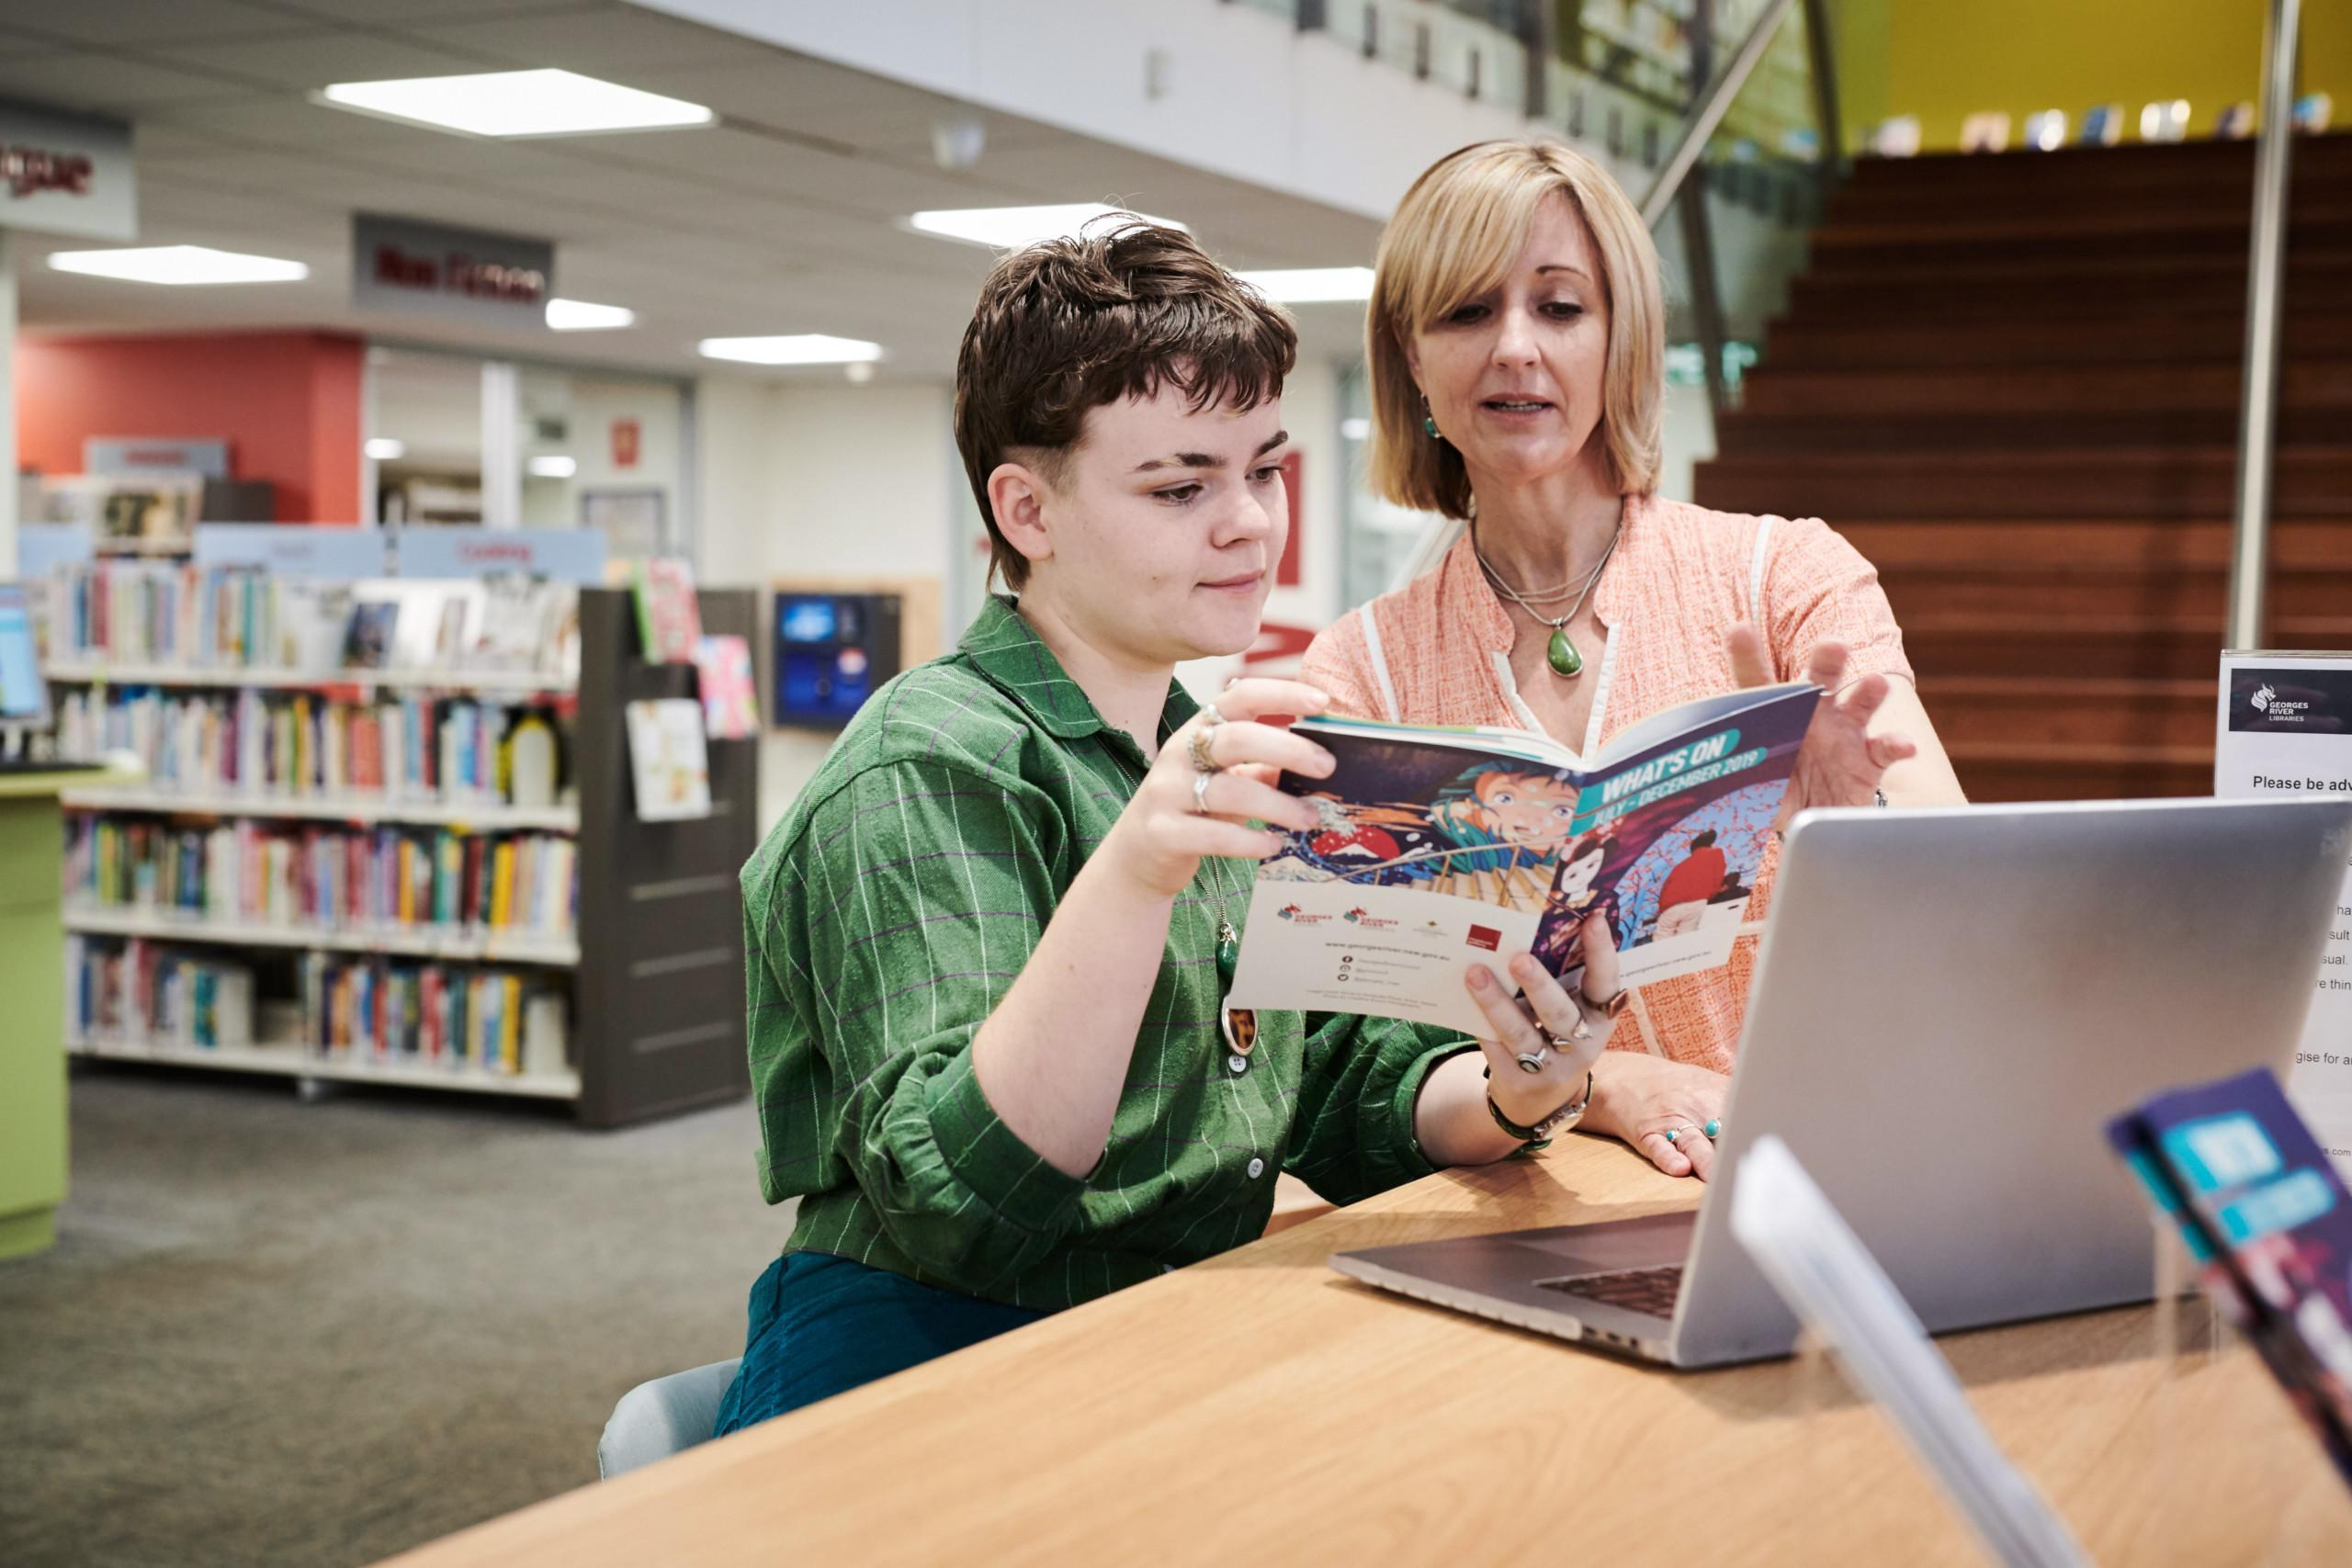 Two women at a library reading a magazine